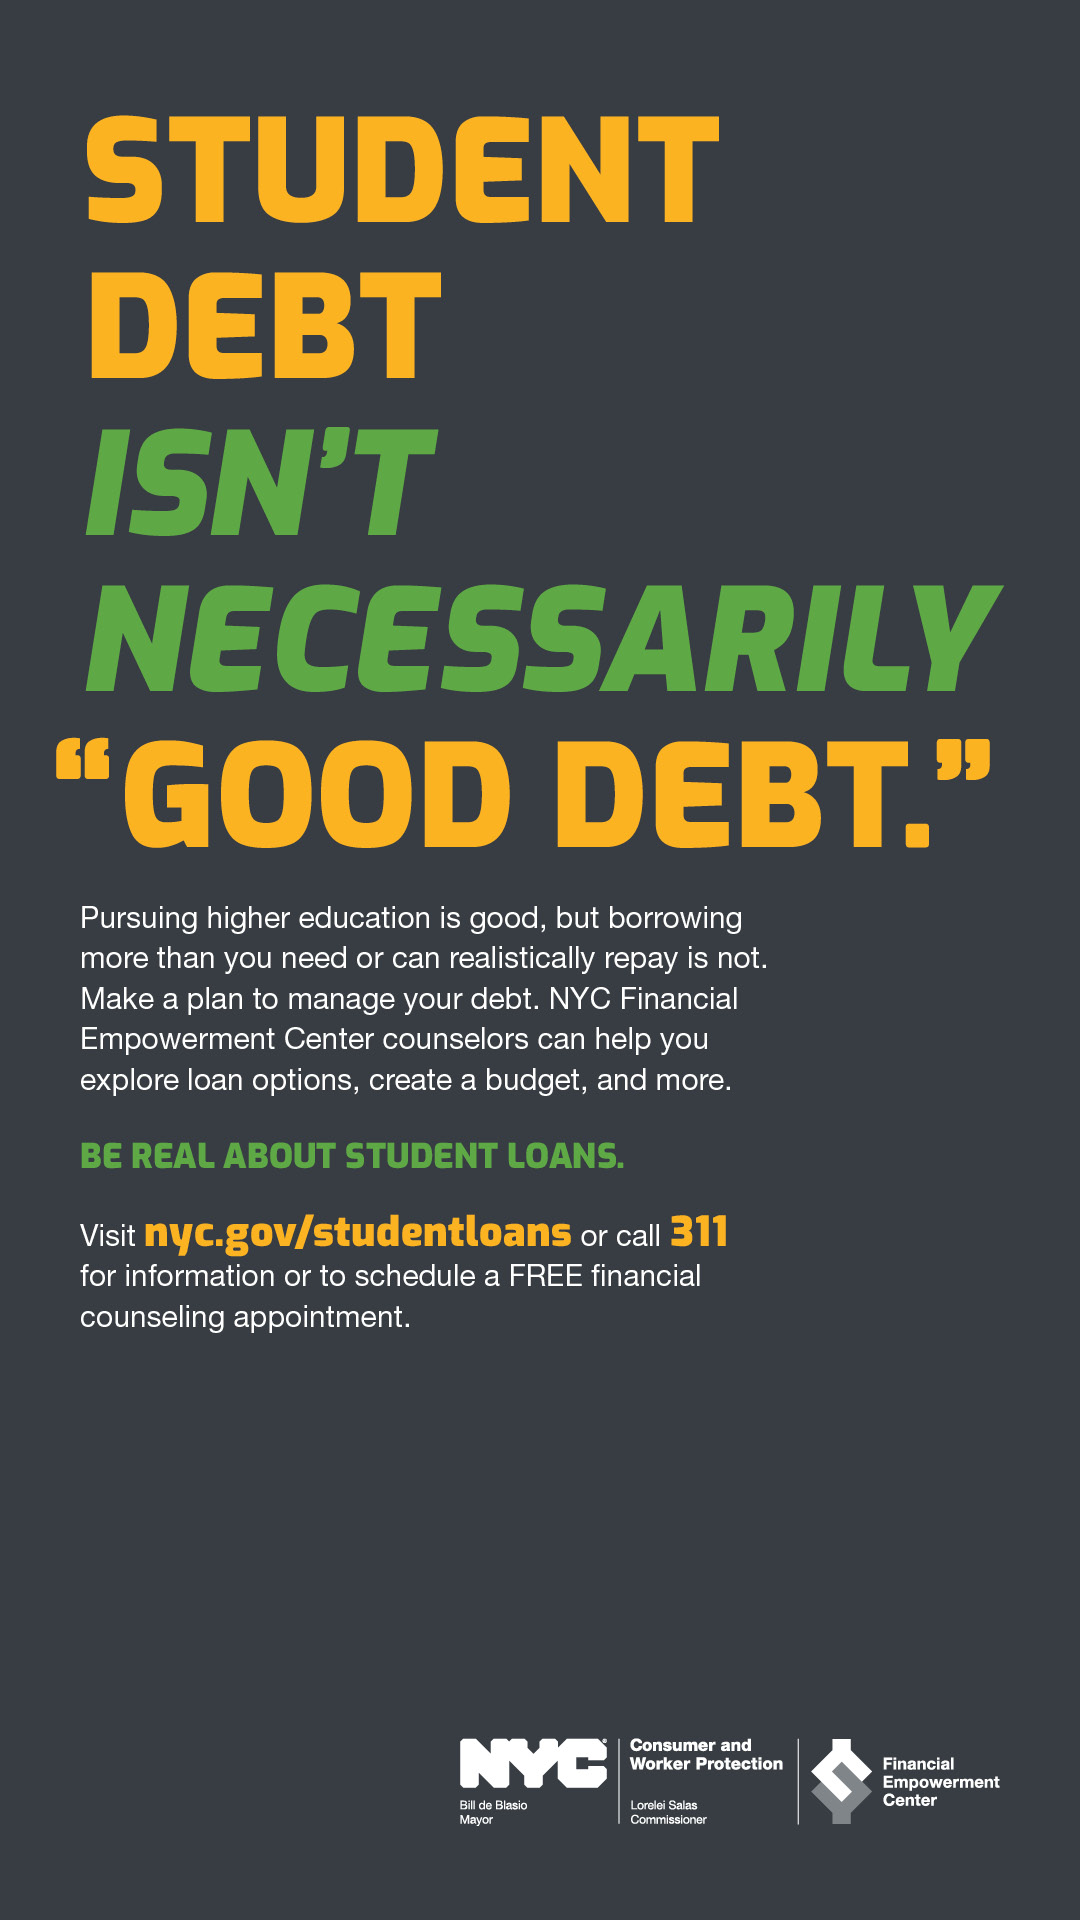 Ad with text STUDENT DEBT ISN'T NECESSARILY GOOD DEBT